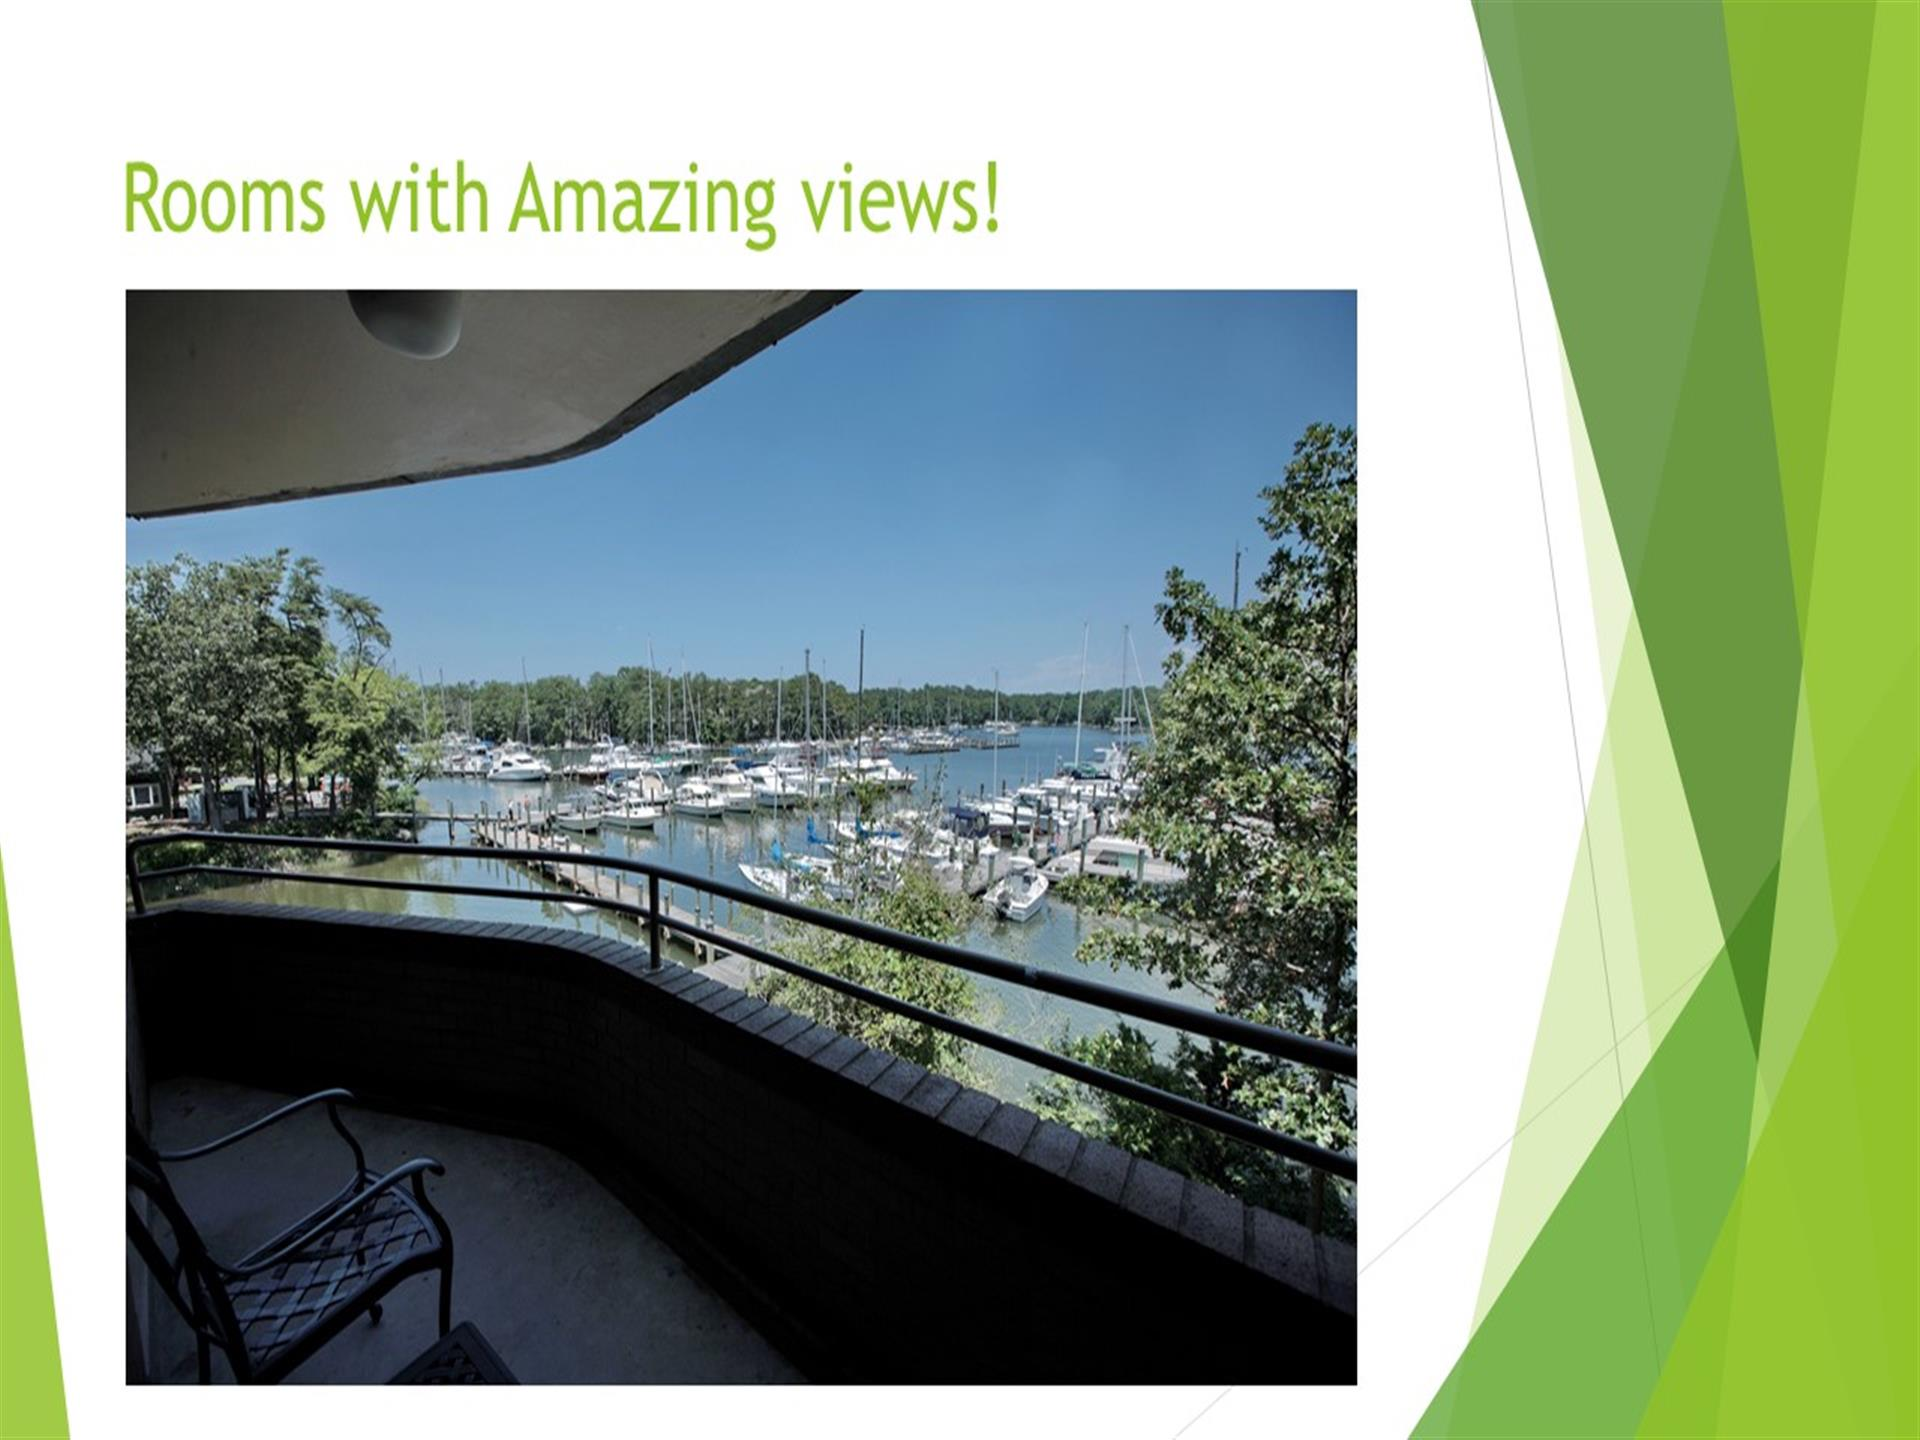 Rooms with amazing views - balcony overlooking harbor with docked boats